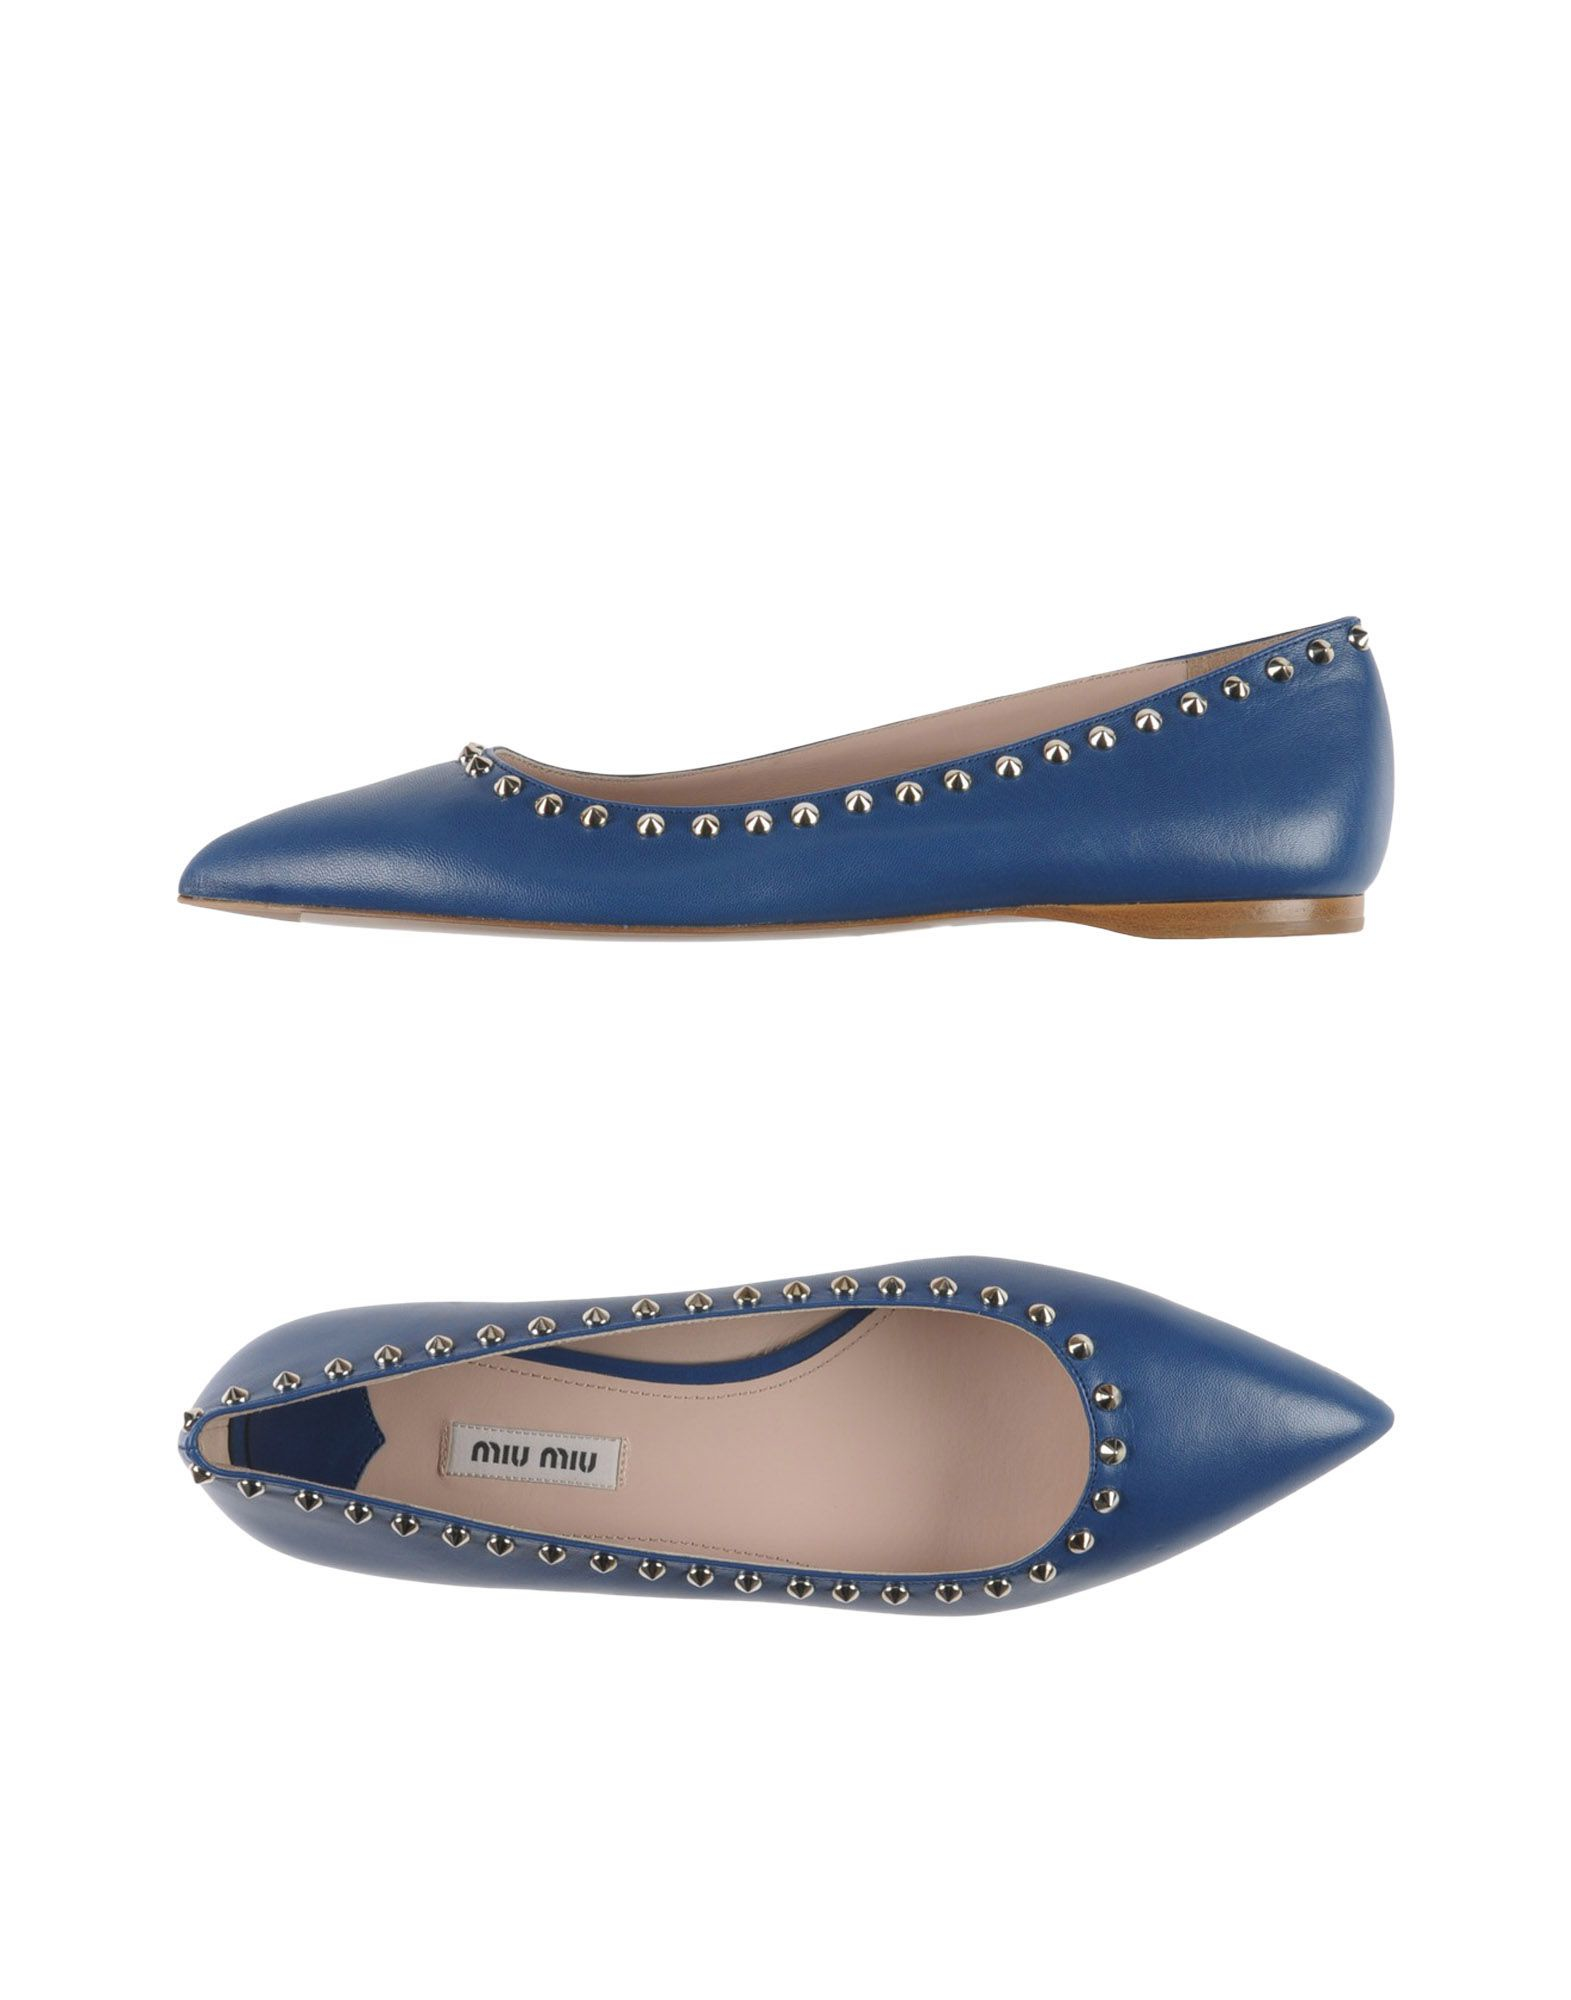 miu miu studded leather ballet flats in blue lyst. Black Bedroom Furniture Sets. Home Design Ideas